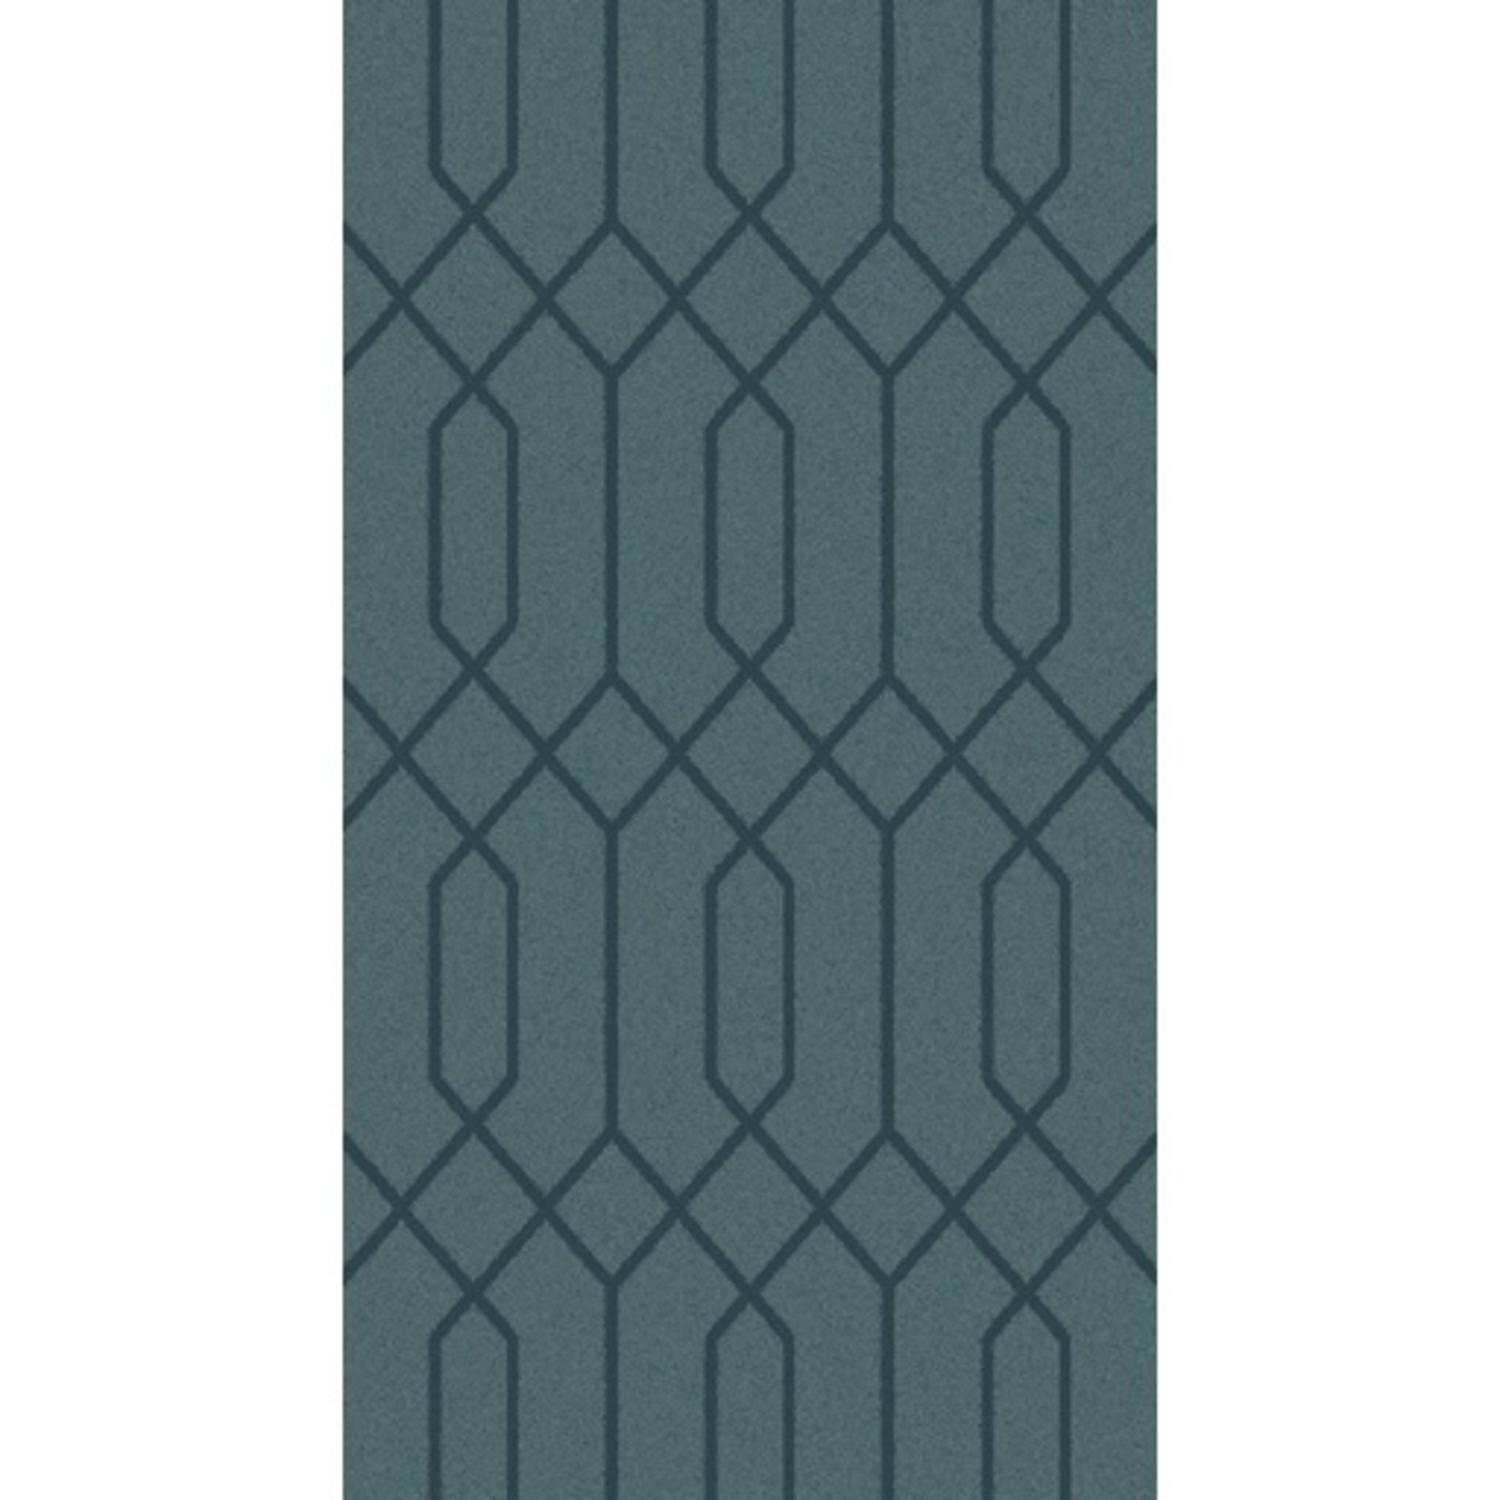 8' x 10' Textured Lines Teal Hand Knotted Wool Area Throw Rug